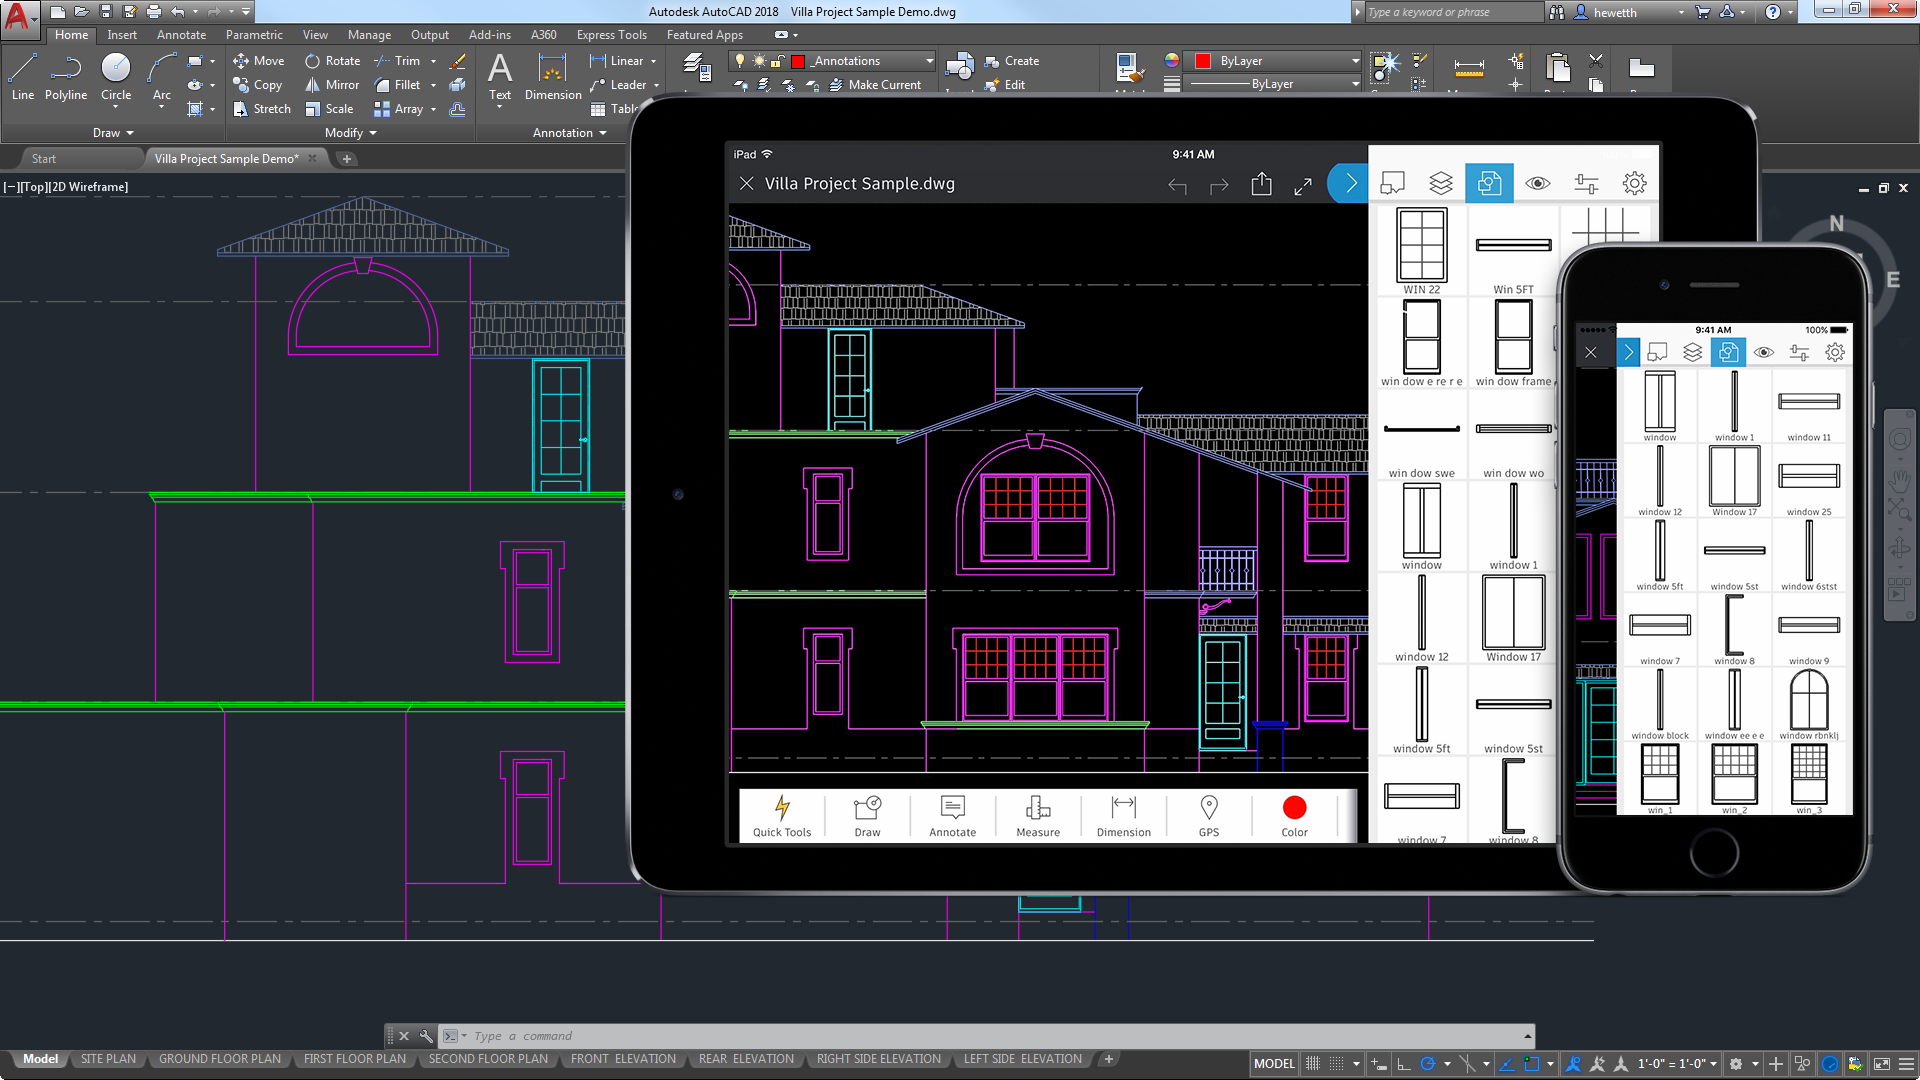 autodesk auto cad connected collaboration large